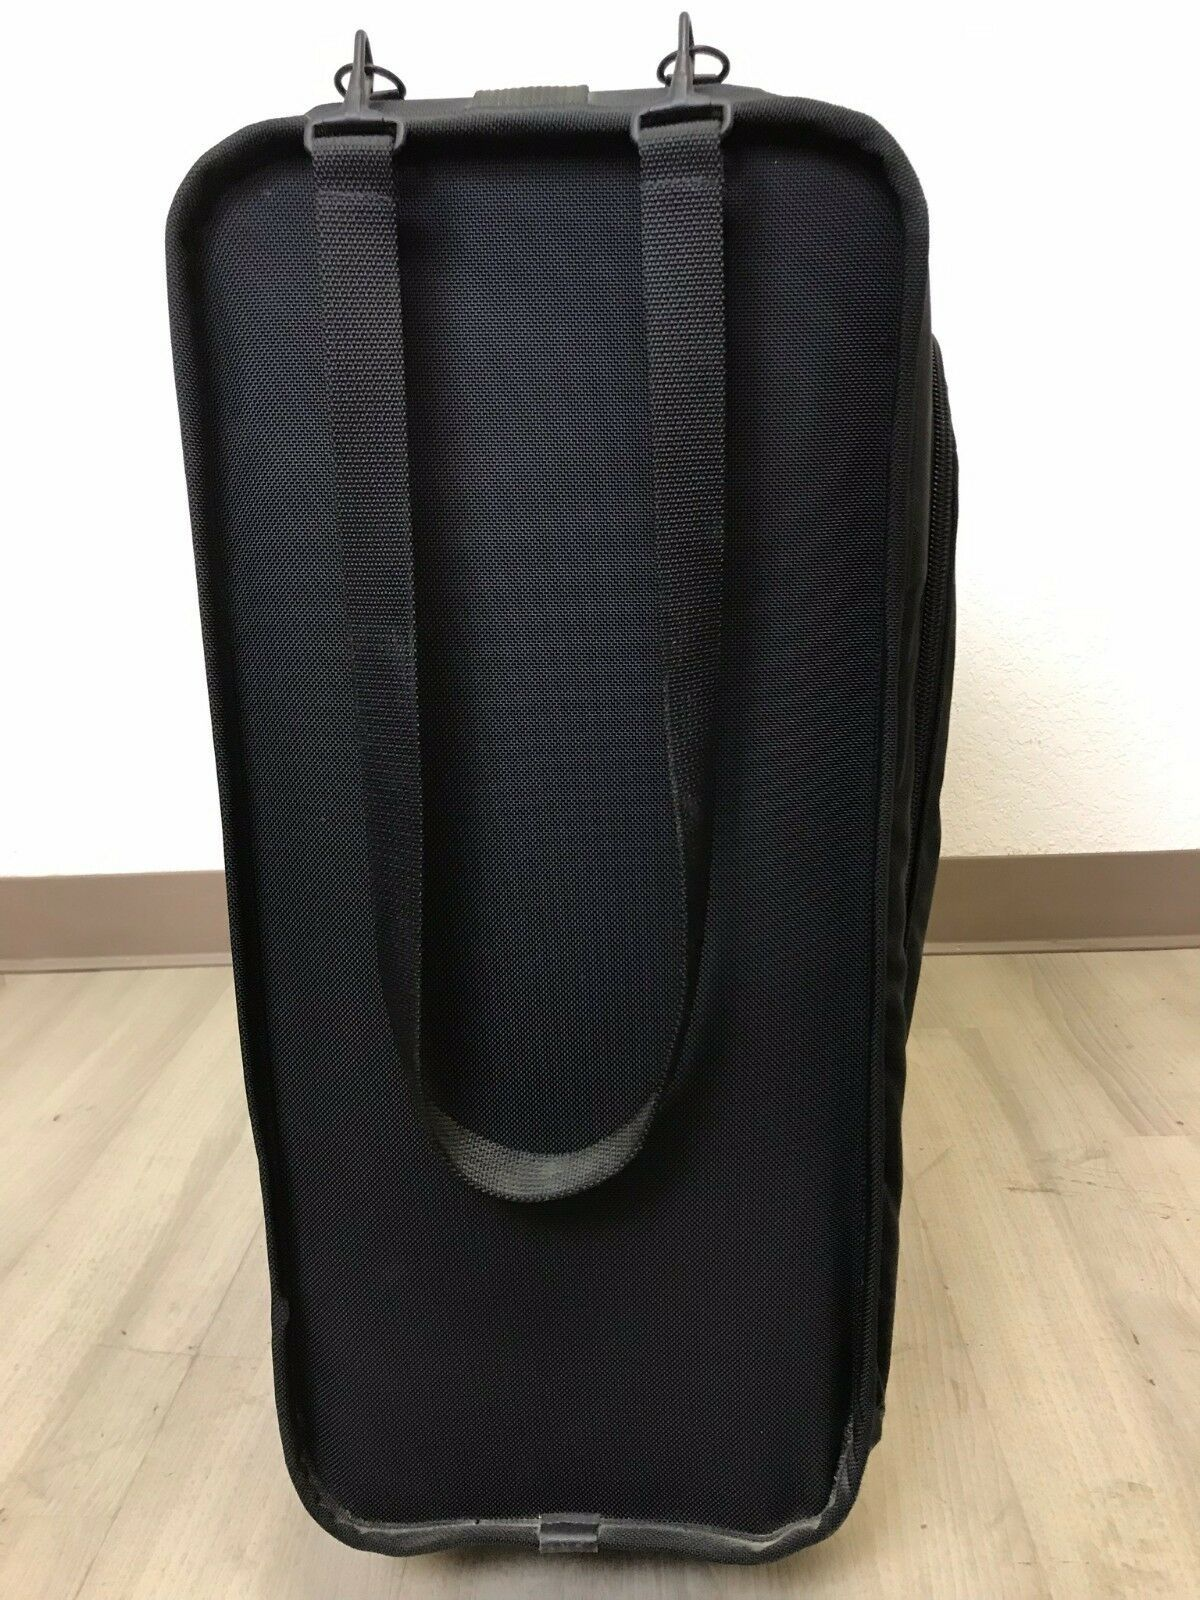 TUMI Suitcase Black Ballistic Nylon Wheeled Rolling Pull Handle Collapsible 31""